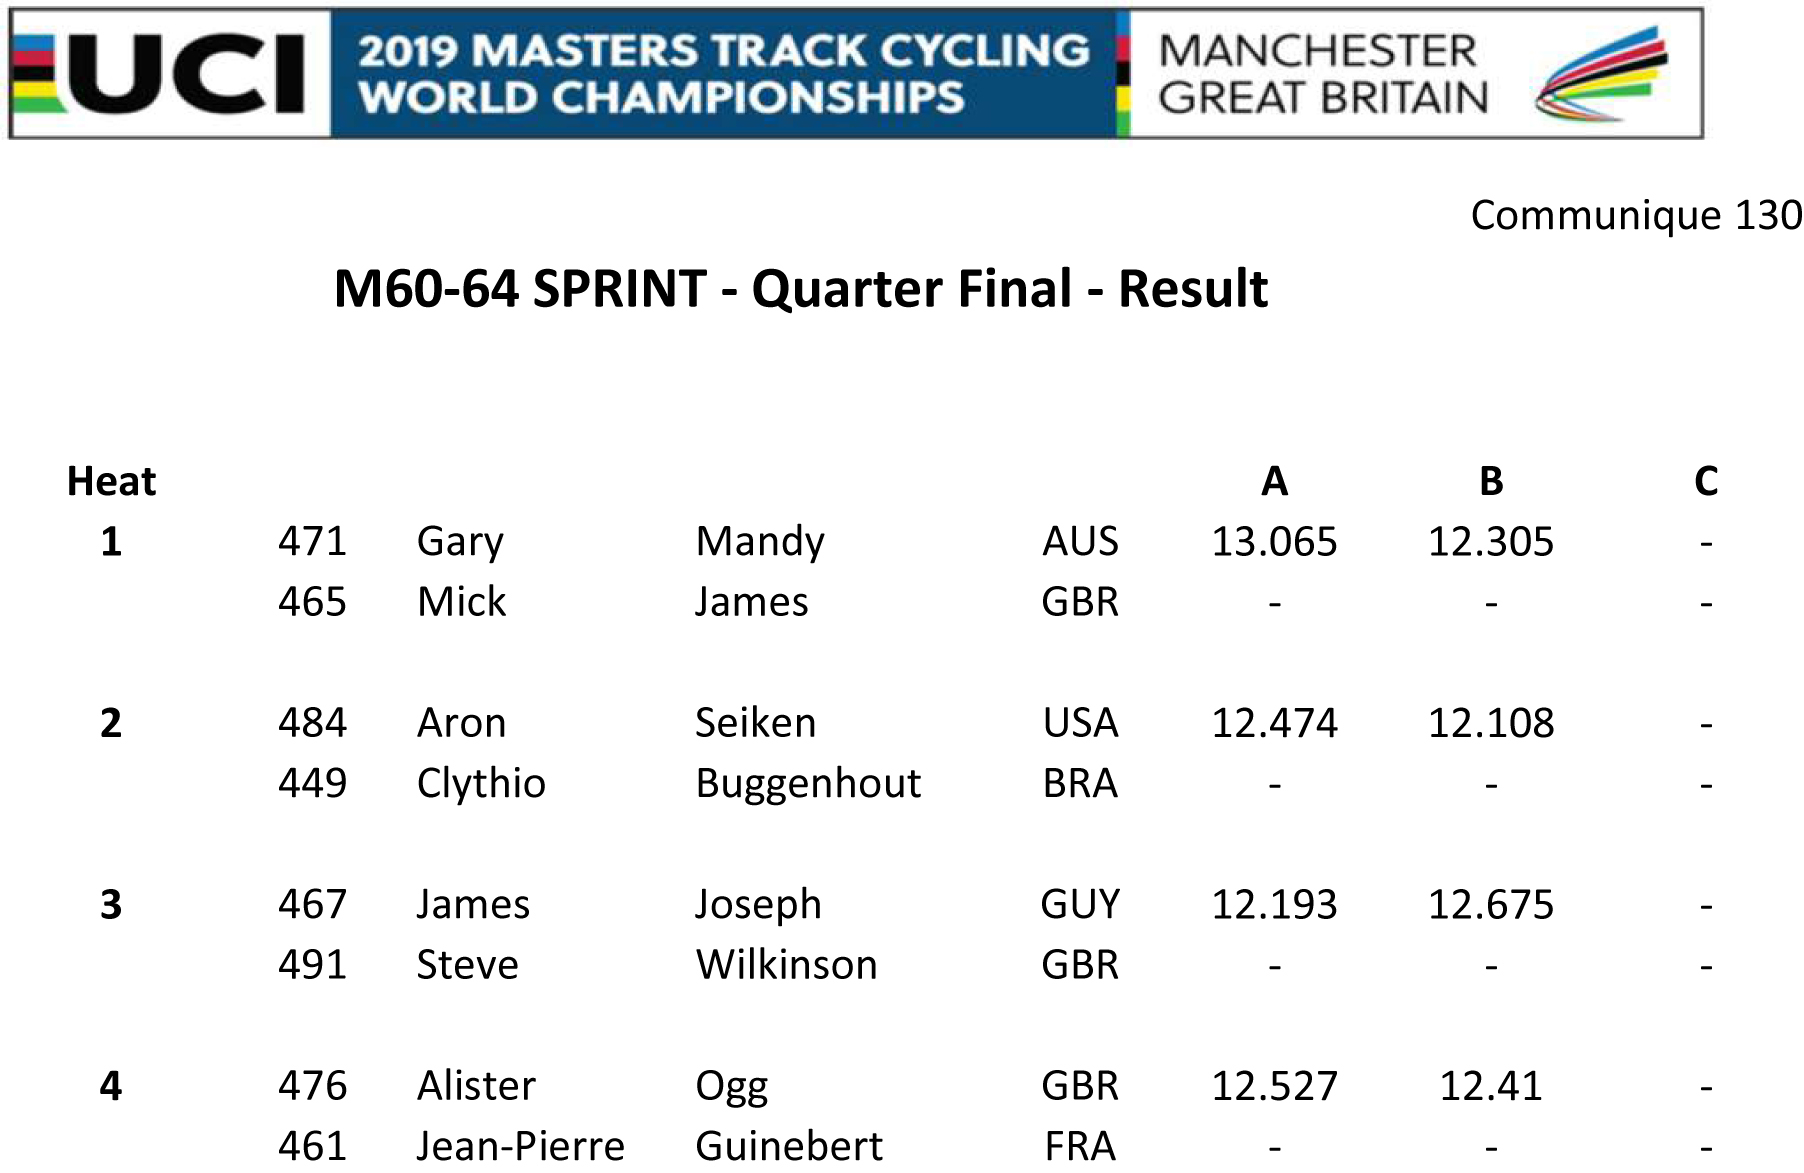 M6064 SPRINT QUARTER FINAL RESULT